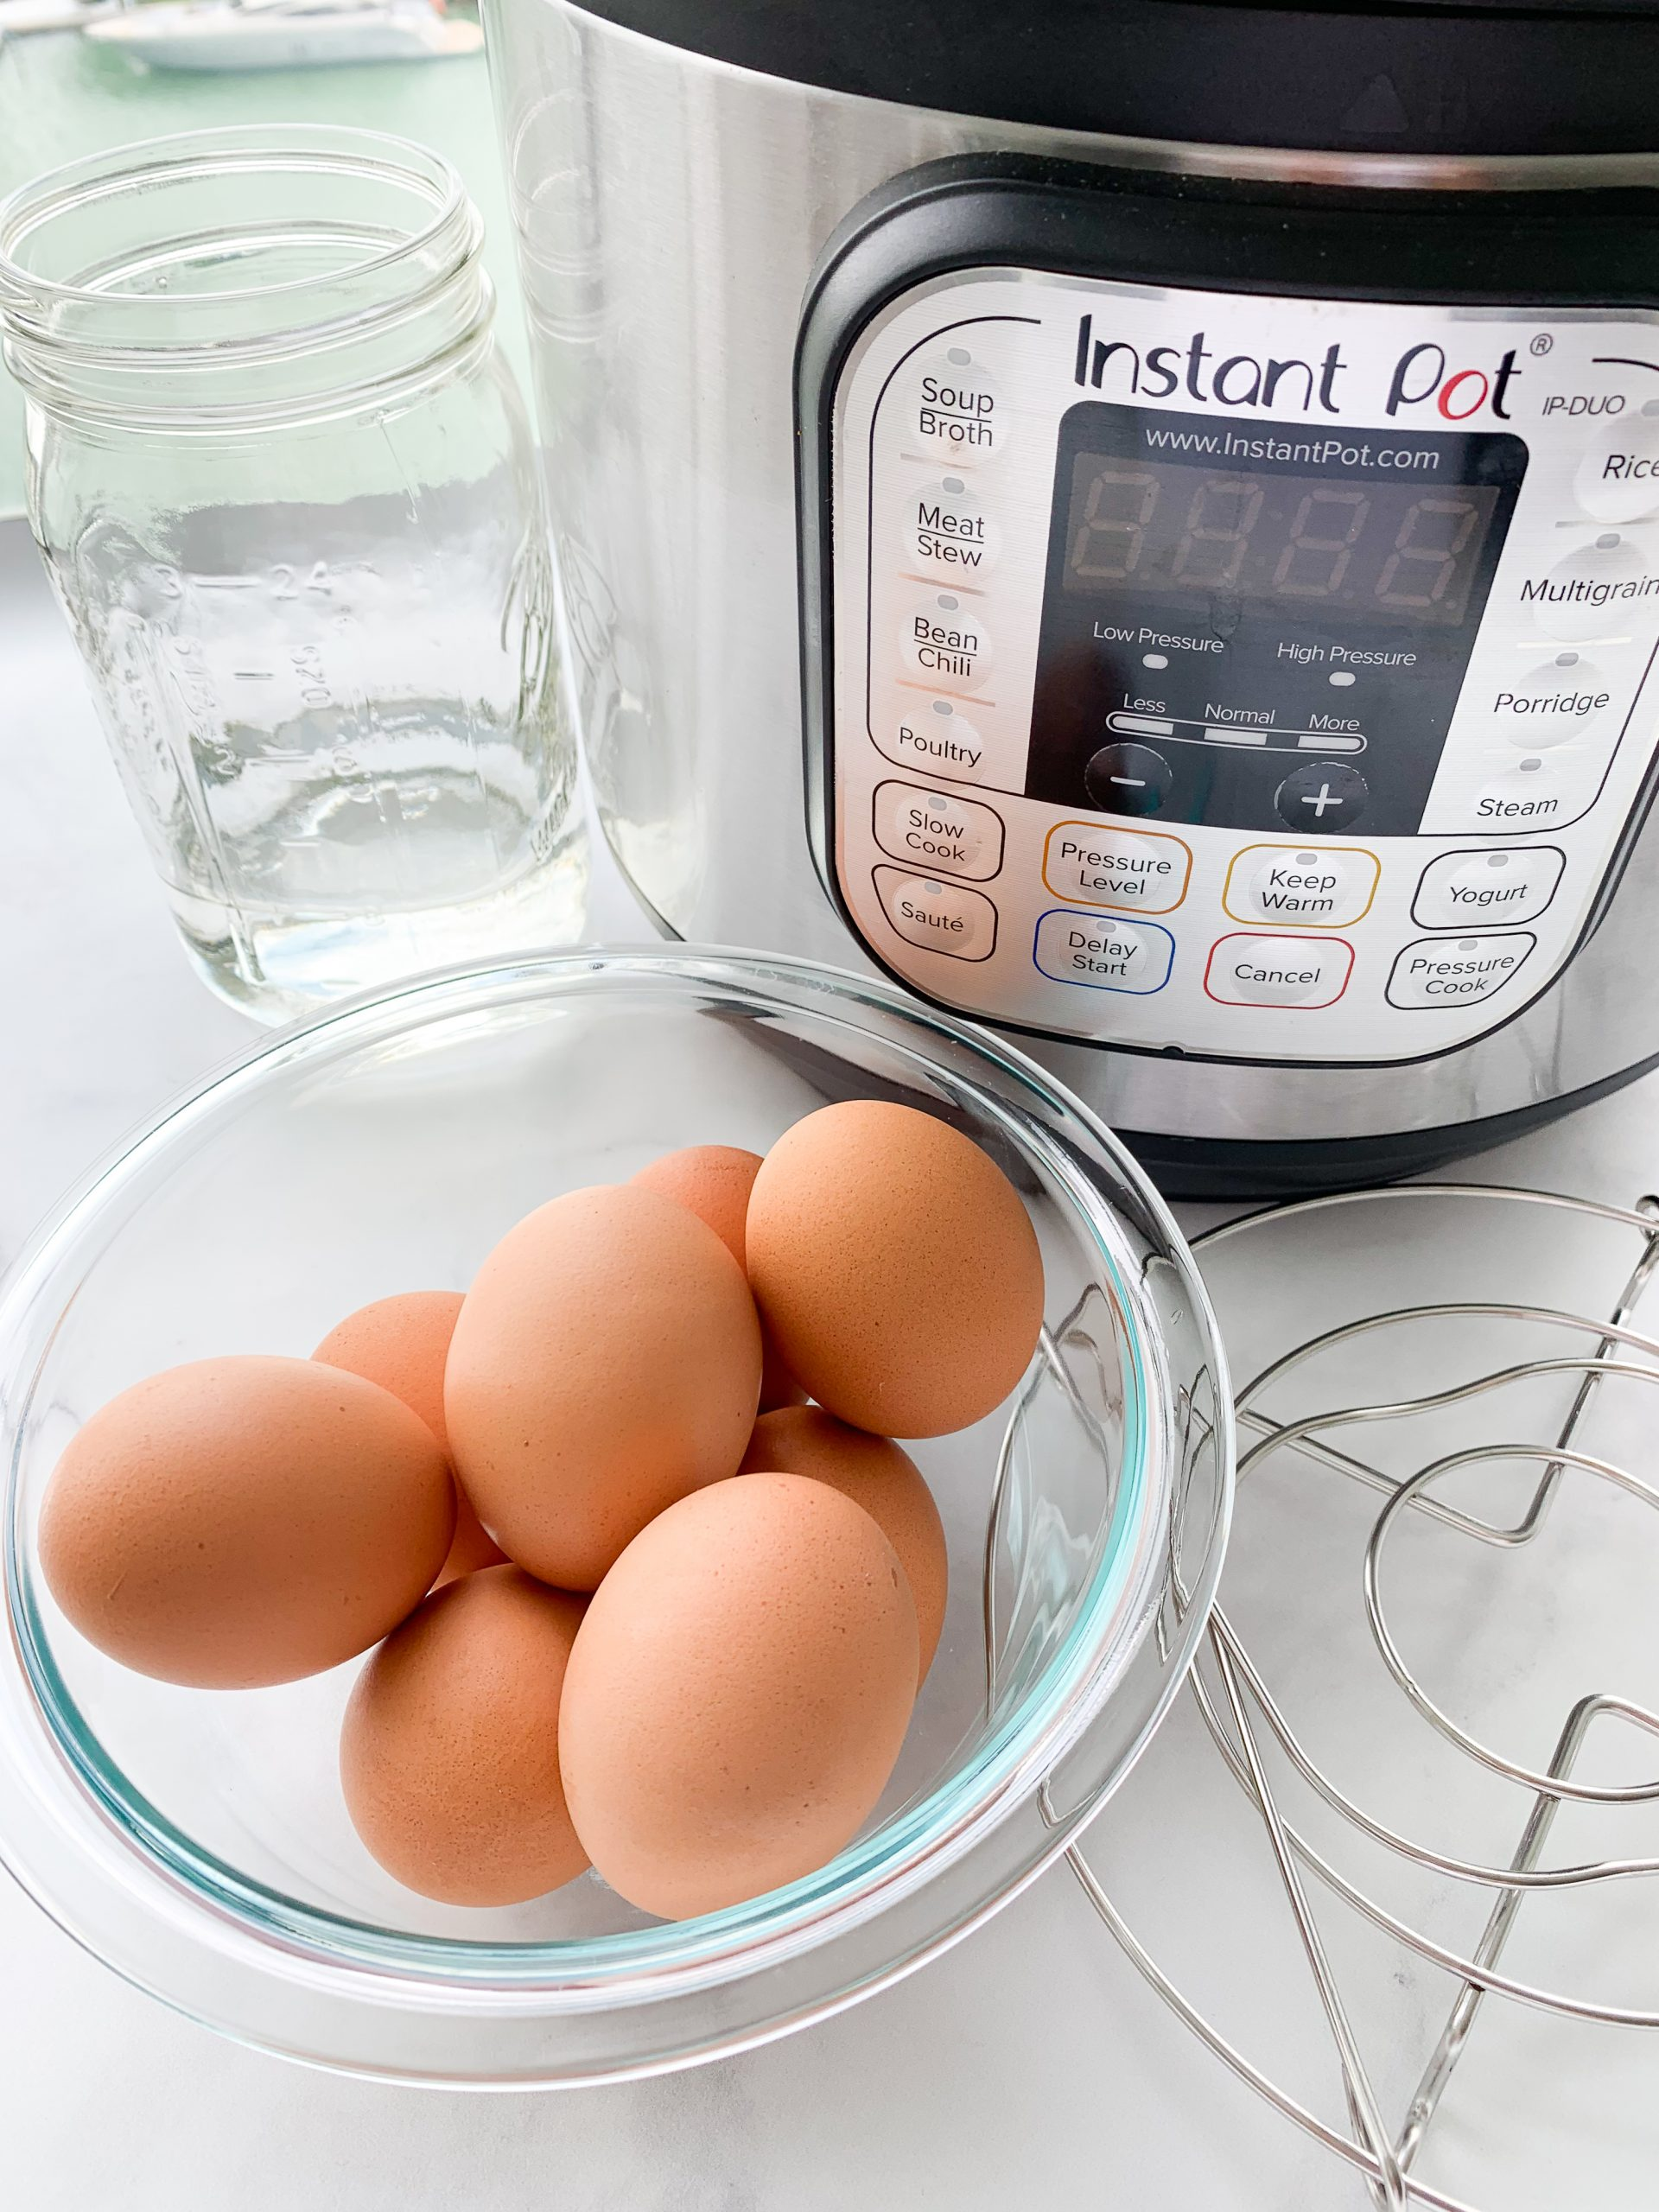 Hard Boiled Eggs in a glass bowl and Instant Pot